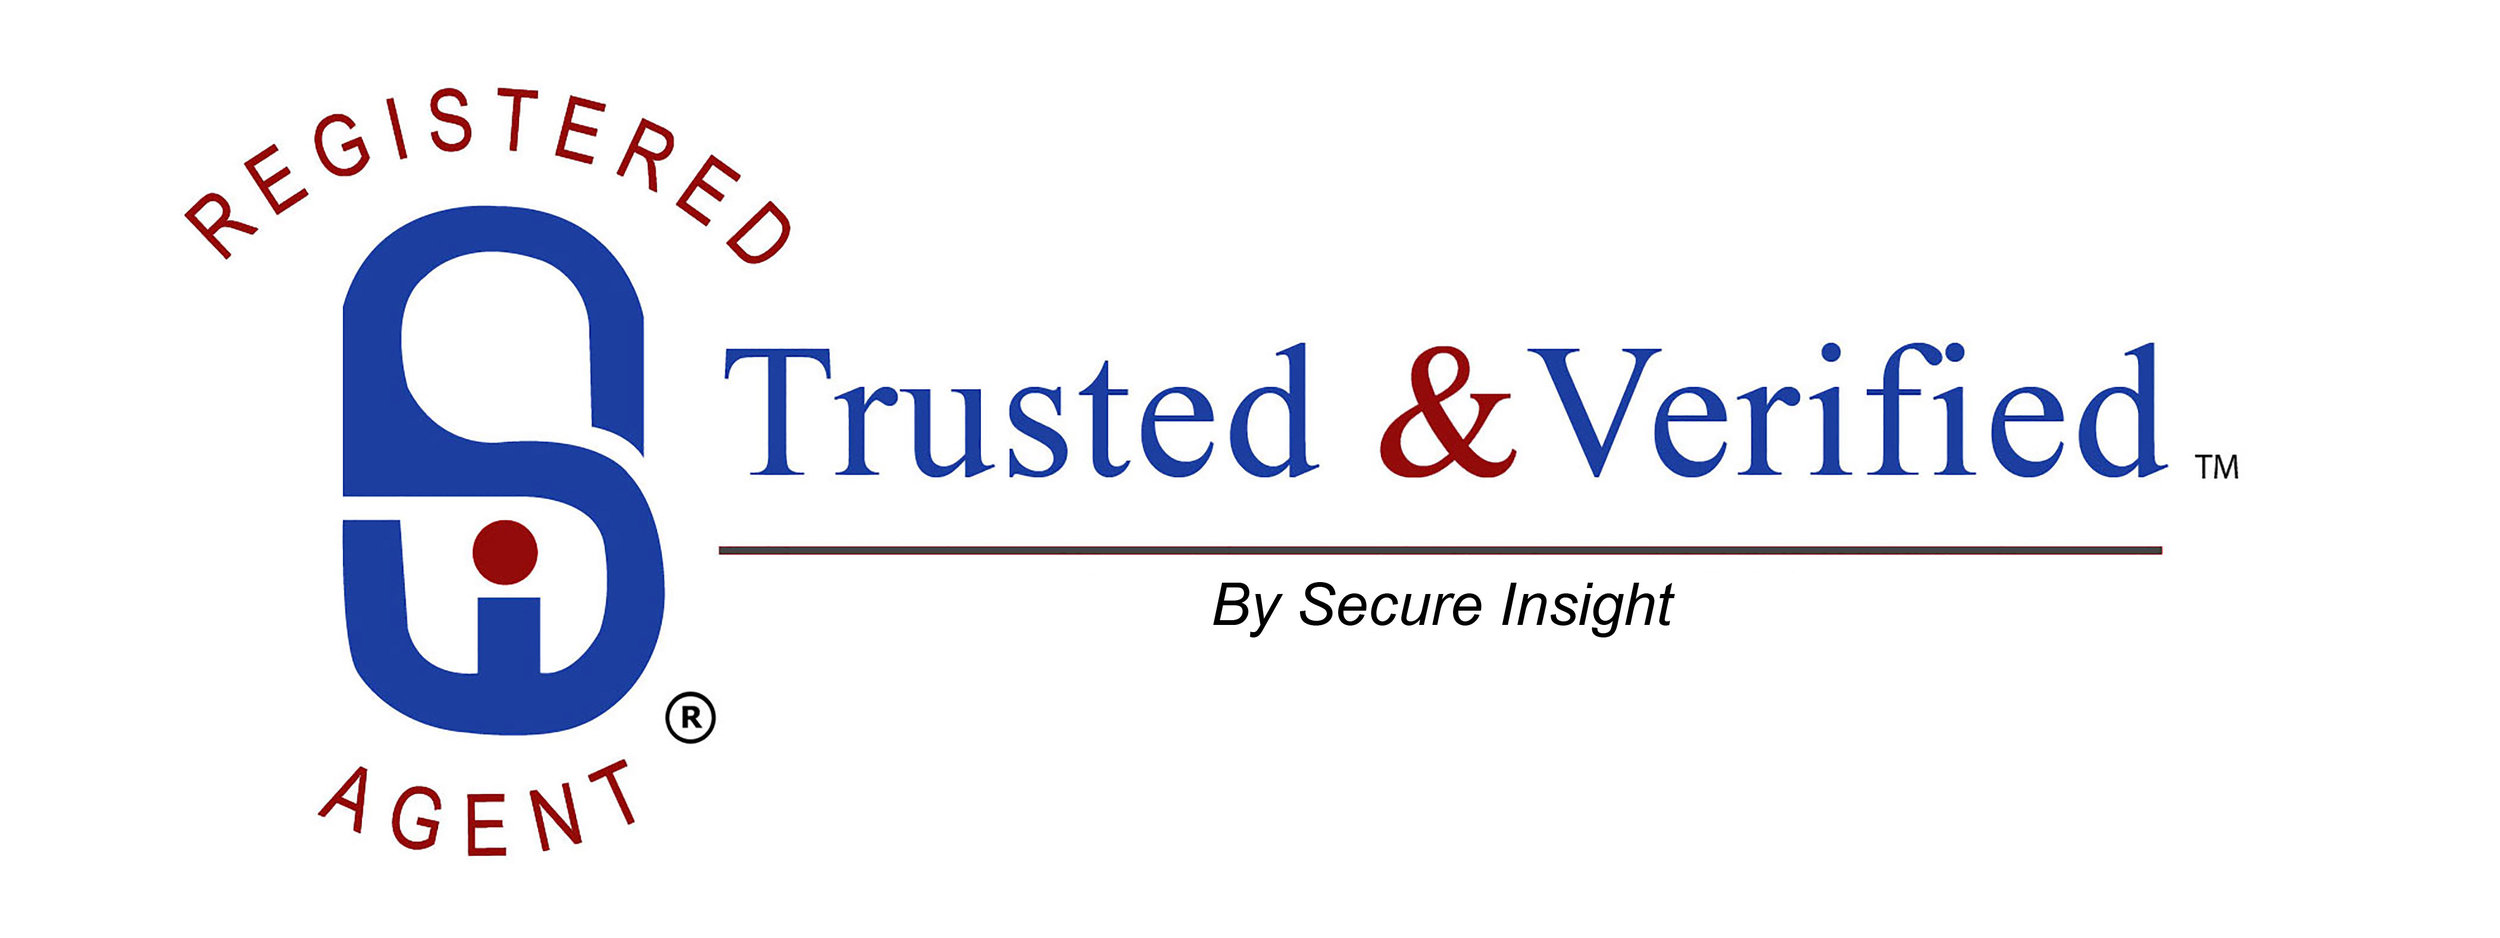 Secure-Insight-Registered-Closing-Agent-Seal.jpg